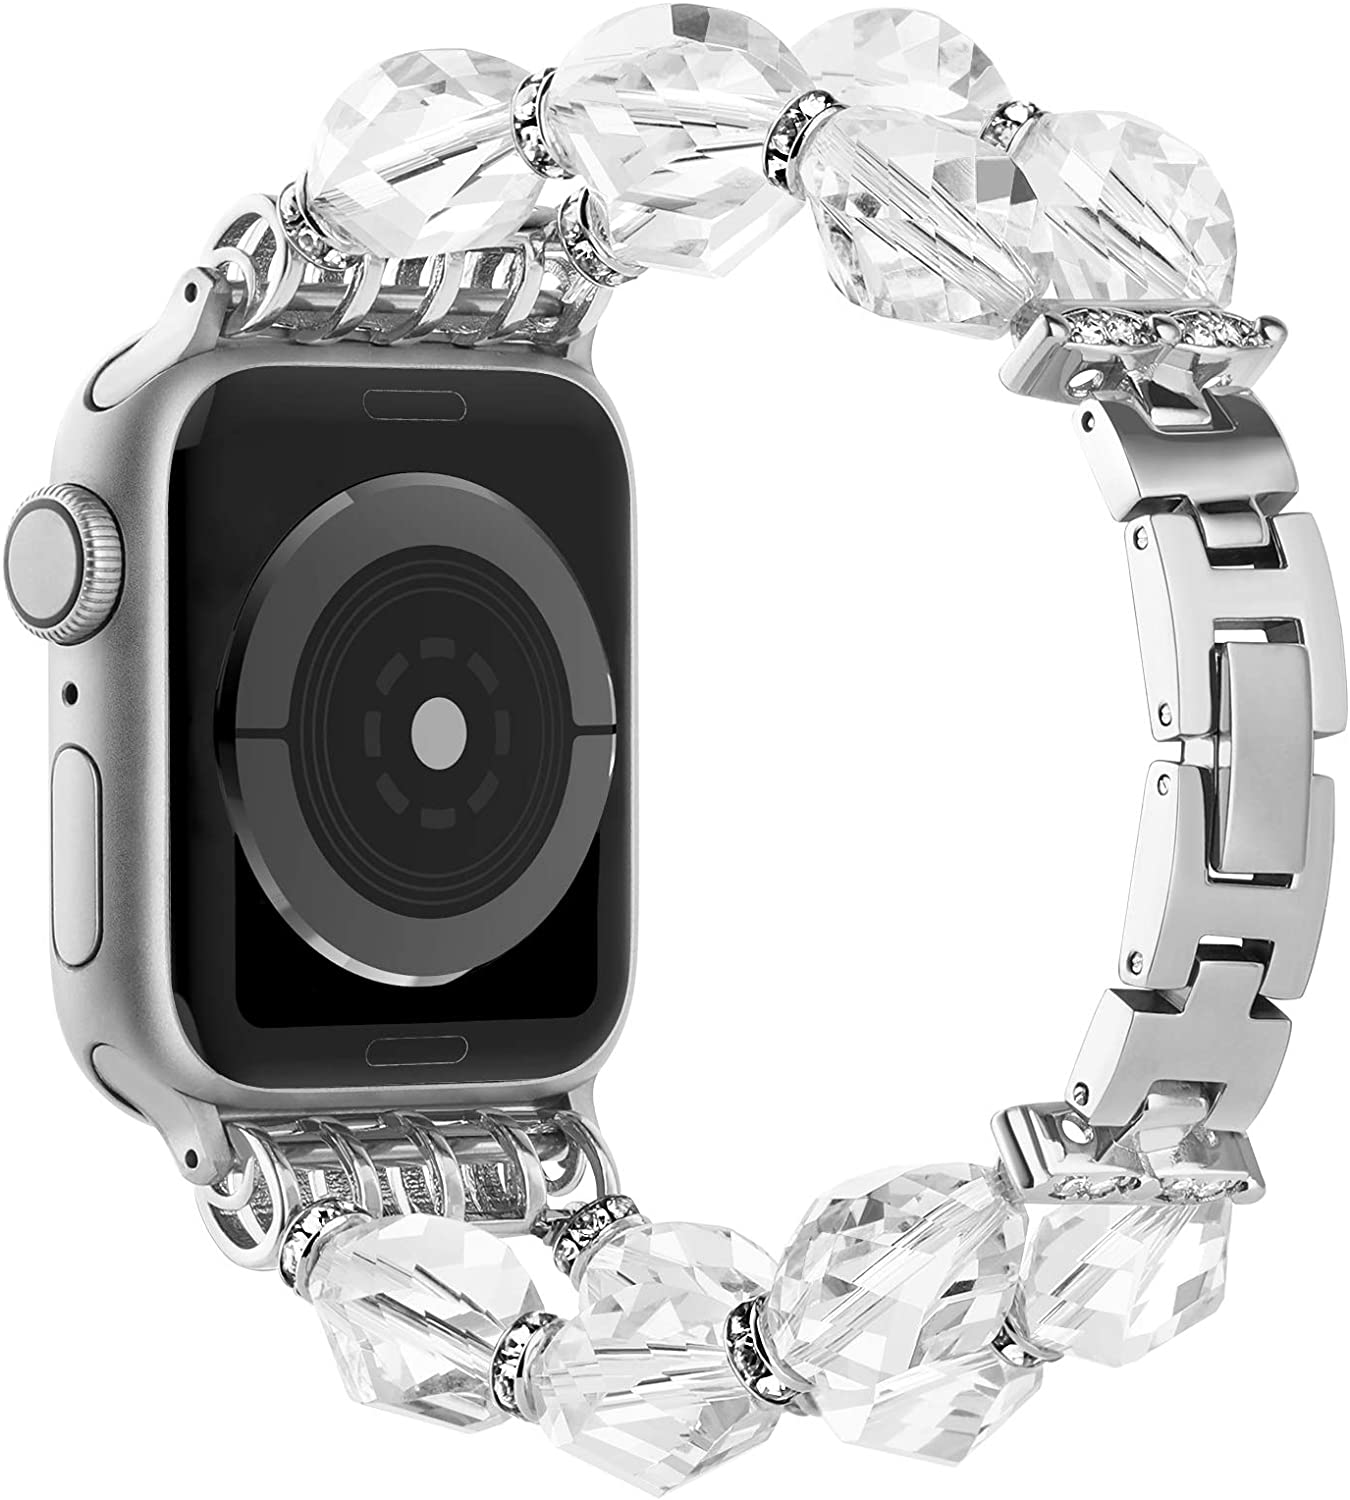 Simpeak Beaded Fashion Band Compatible with Apple Watch 42mm 44mm Series 6 SE 5 4 3 2 1, Adjustment Handmade Beaded Elastic Women Bracelet with Buckle Replacement for iWatch 42 44, White